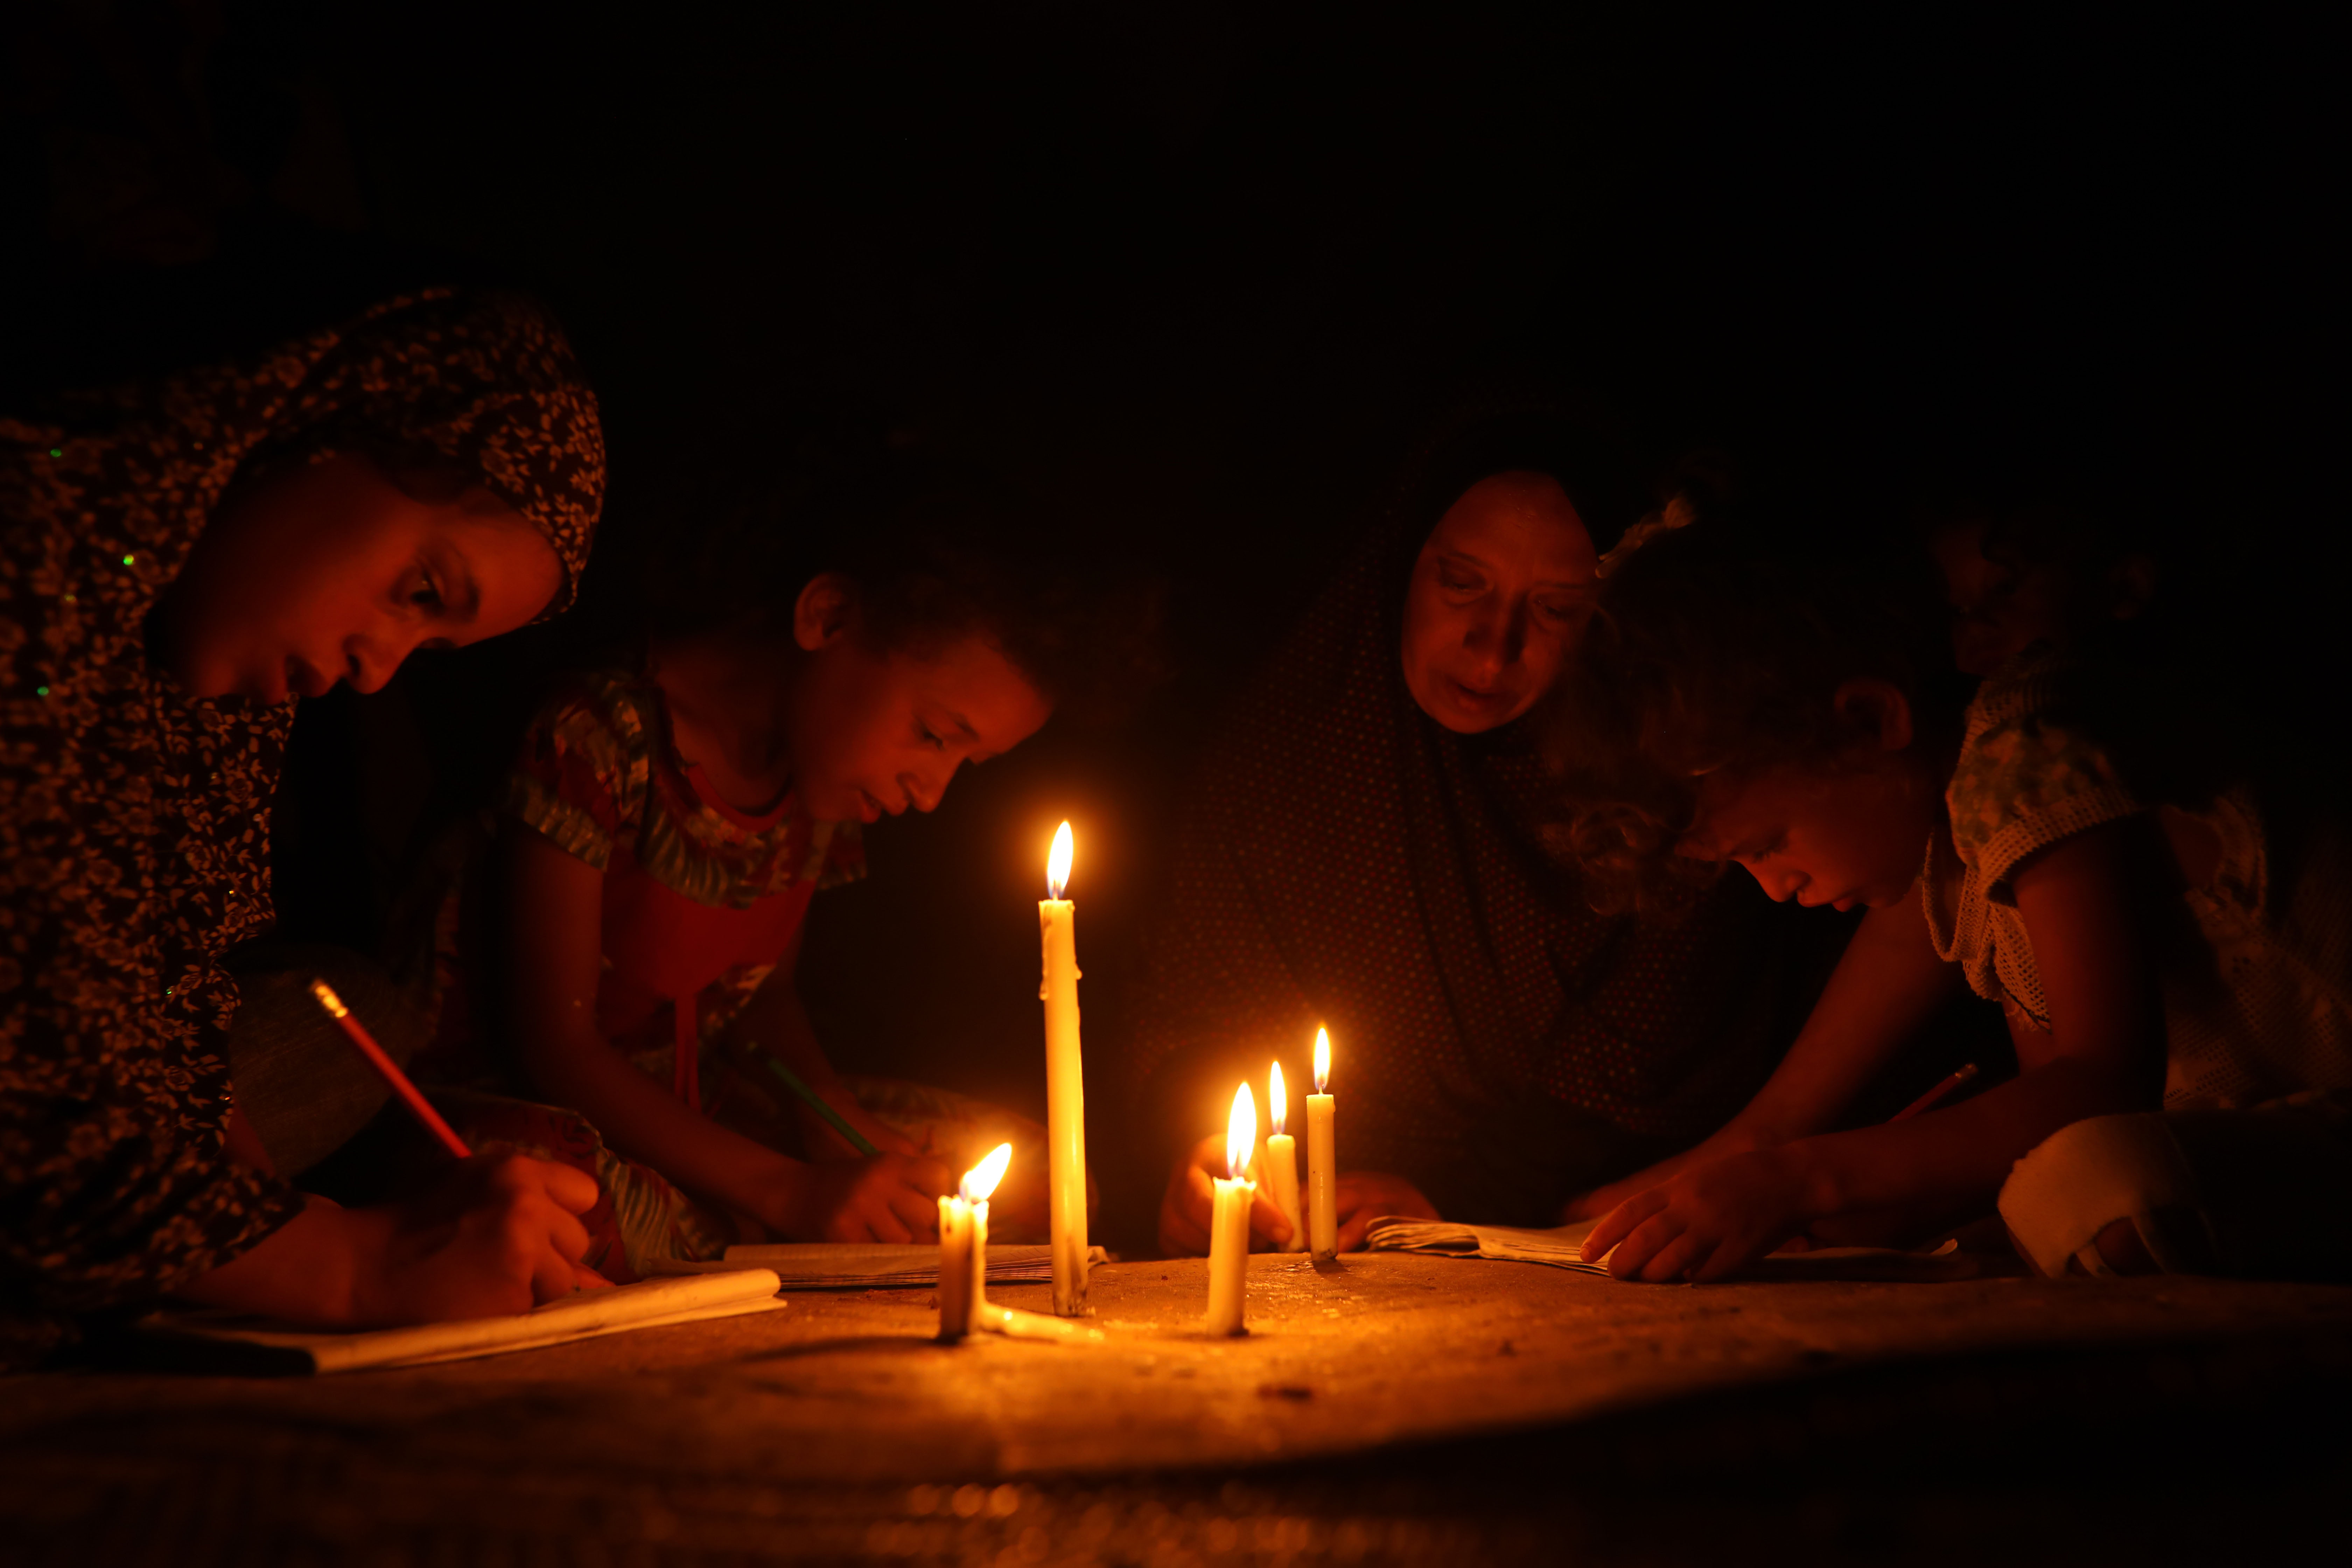 Gaza's electricity crisis claims another three Palestinian children